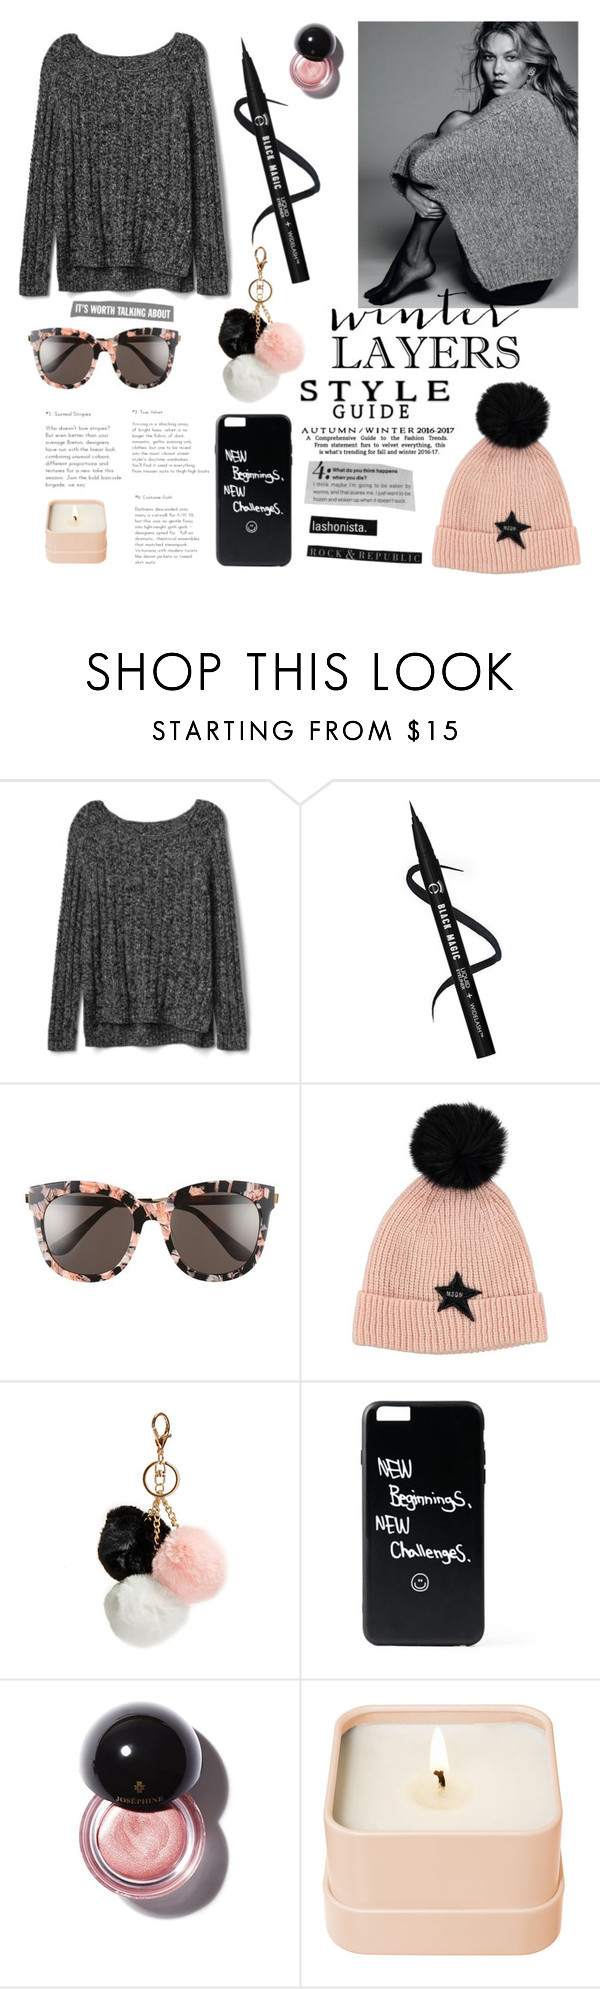 """""""Untitled #339"""" by irixiketa ❤ liked on Polyvore featuring Gap, Gentle Monster, GUESS and Henri Bendel"""